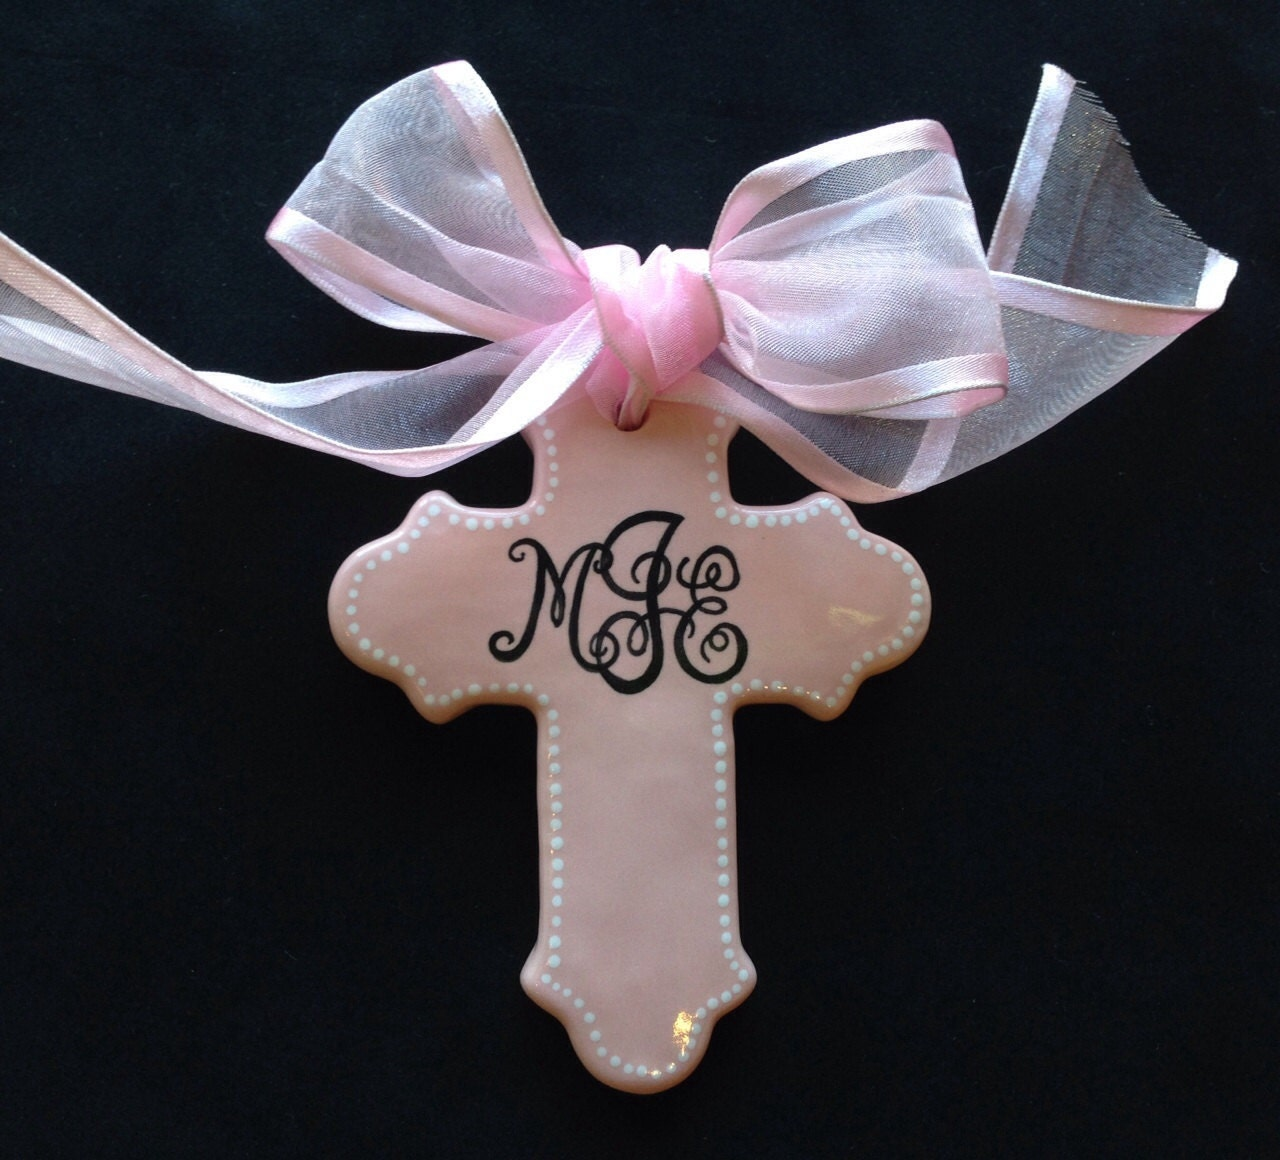 Baptism Christening Baby Metal Ornament: Pink Personalized Cross Ornament Easter Baptism Christening